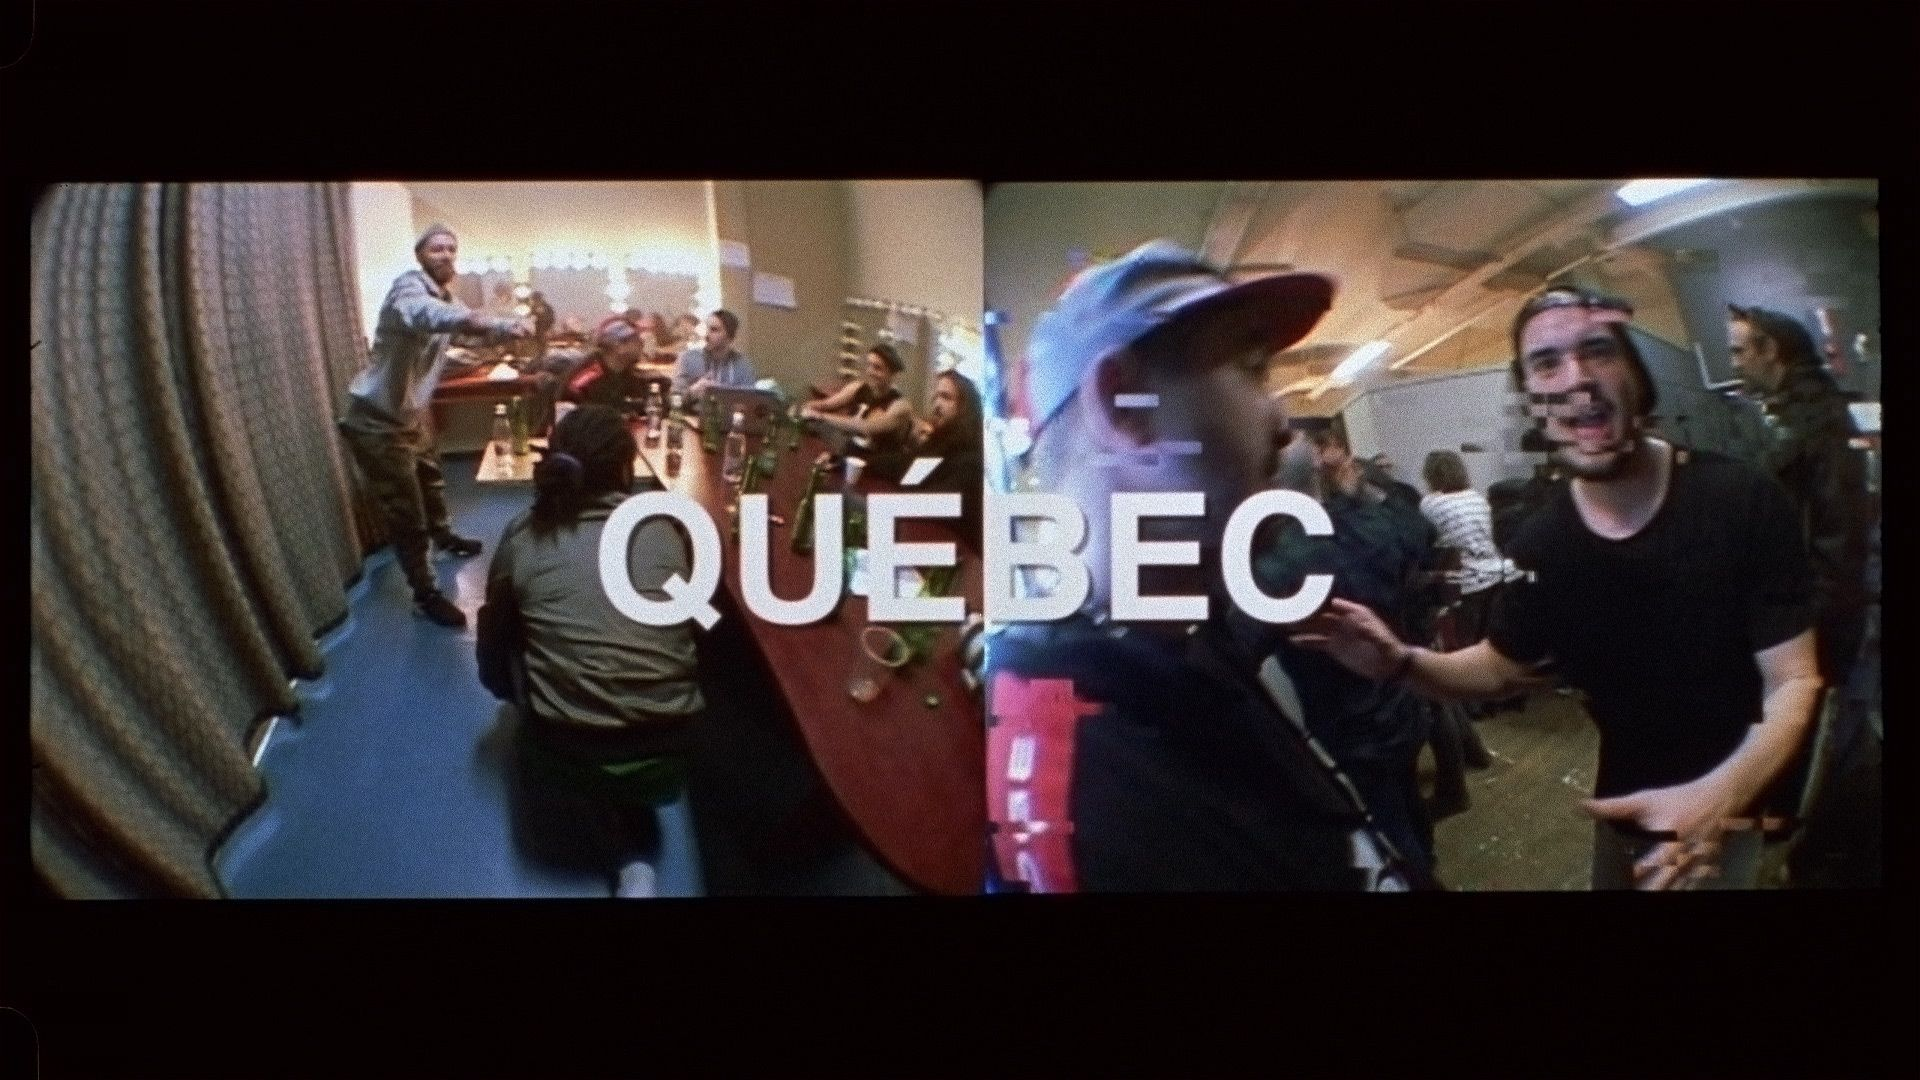 Alaclair Ensemble bandmates with Koriass and Brown backstage in Quebec city being silly in front of camera for L'Osstidfilm documentary filmed by Vincent Ruel-Cote from Les Gamins about L'Osstidtour